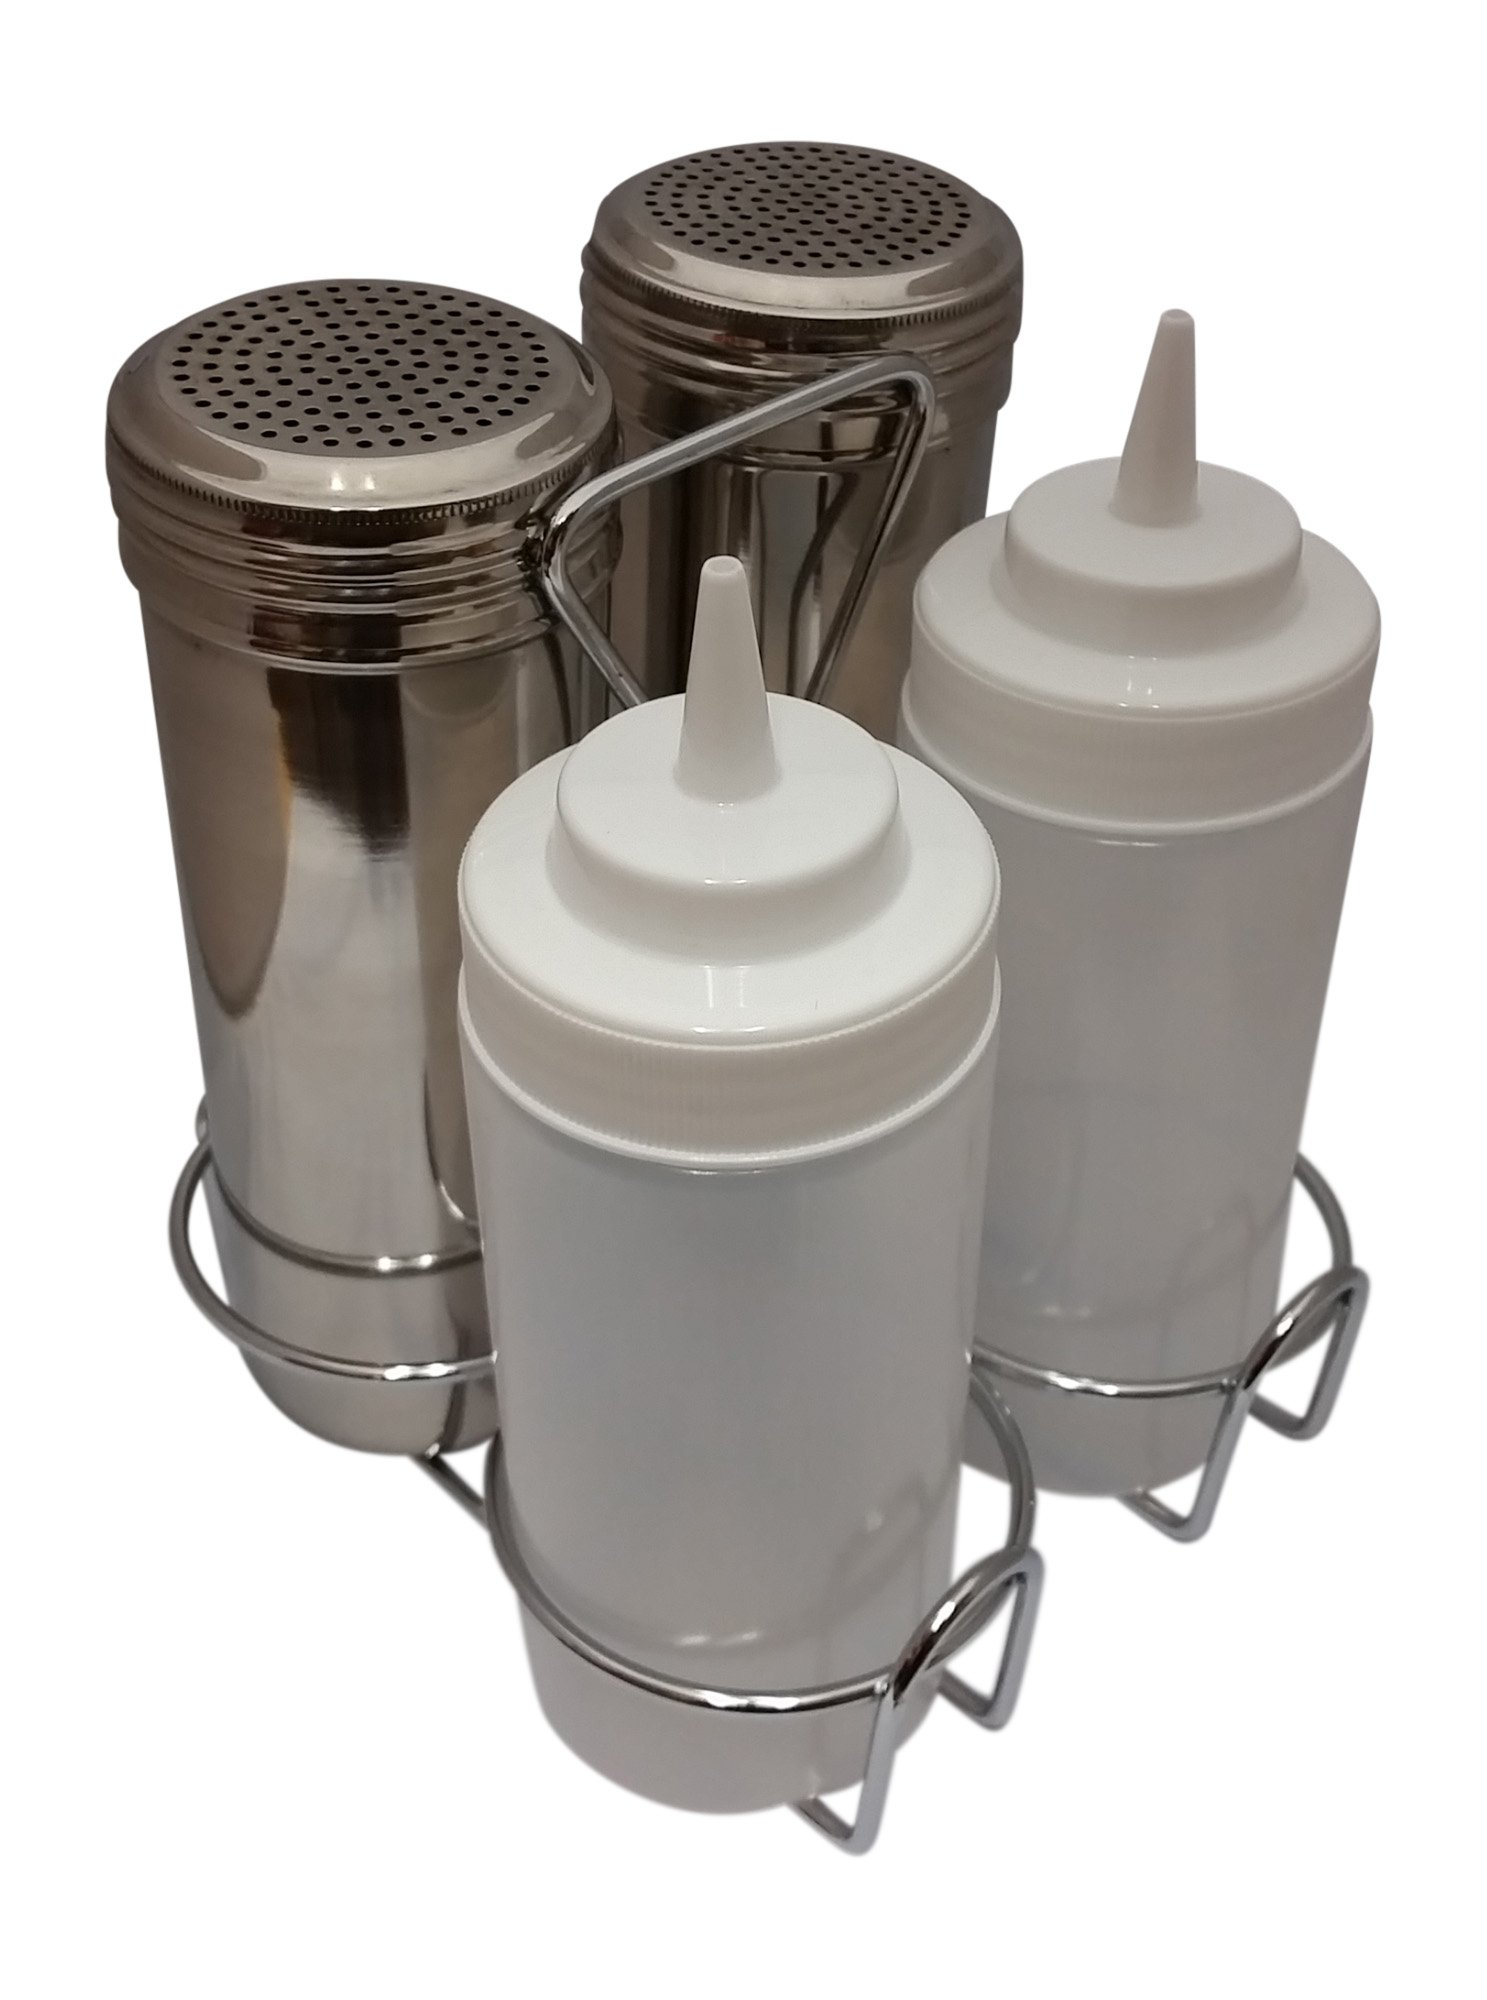 Griddle Sauce Bottle and Seasoning Shaker Set with Caddy by Backyard Life Gear